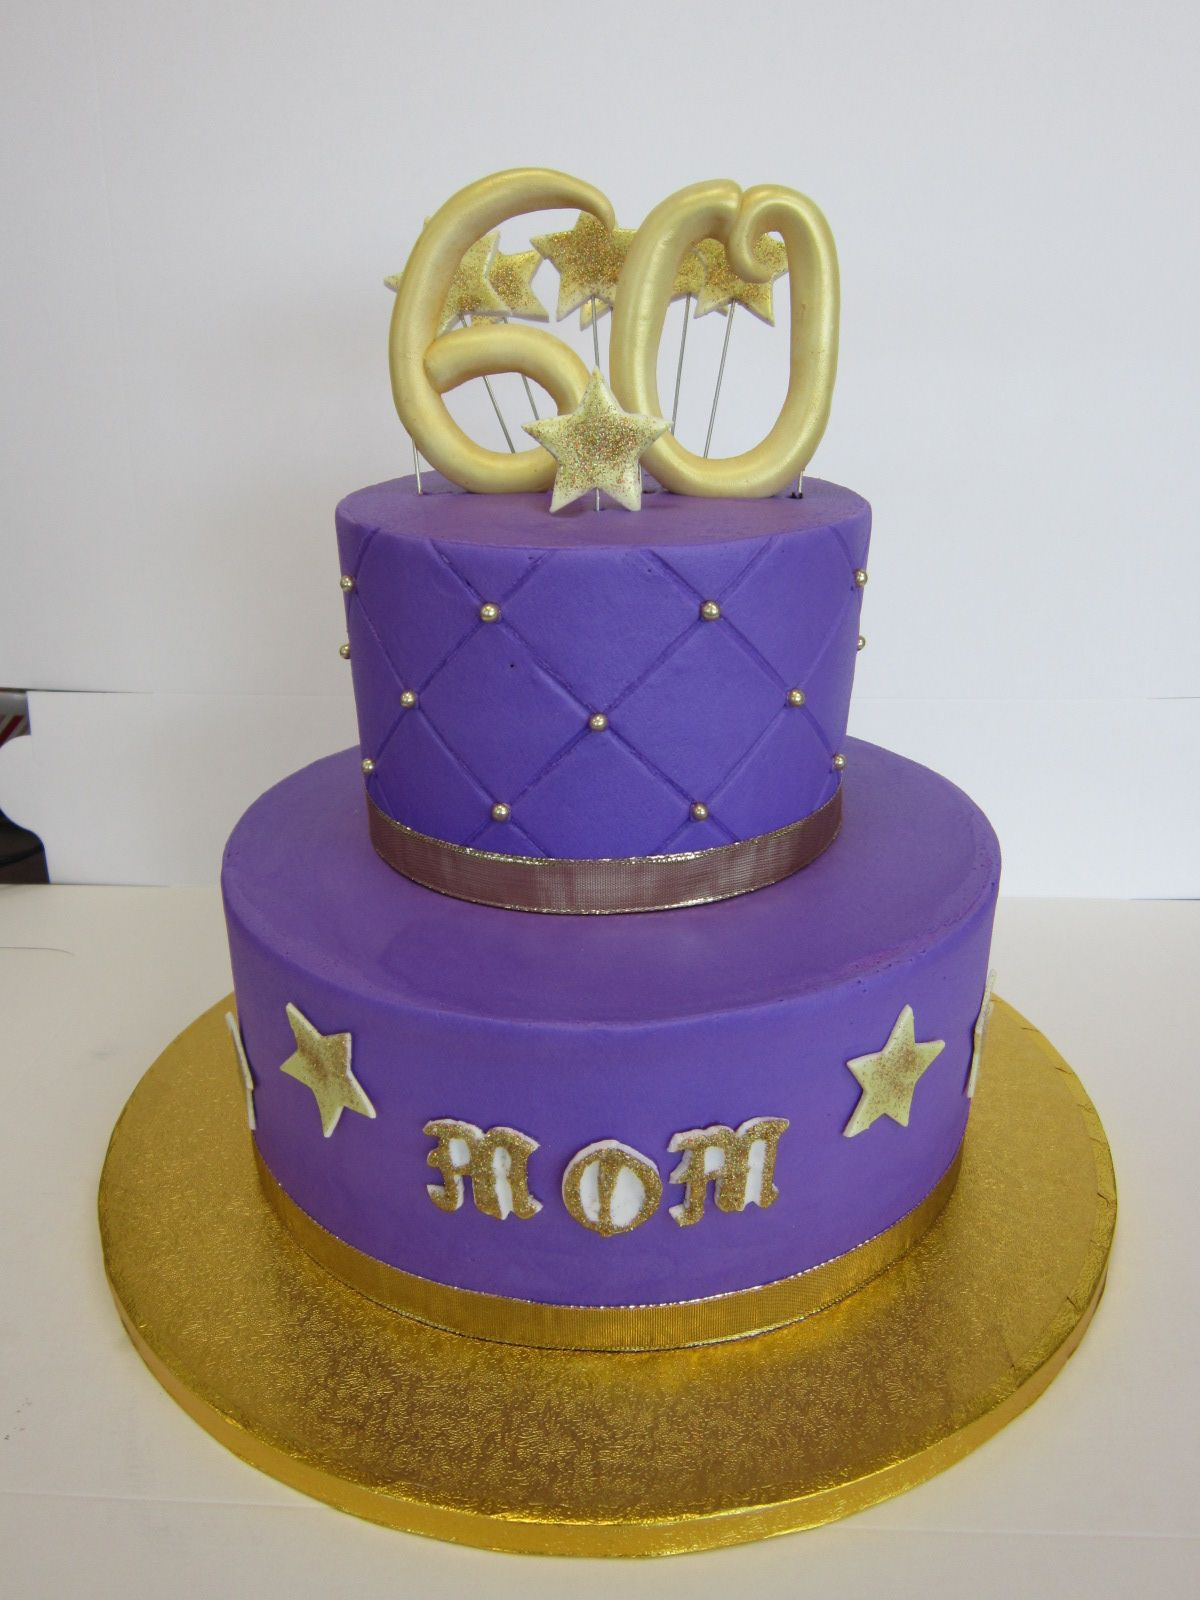 2 Tier 60th Birthday Cake Purple And Gold